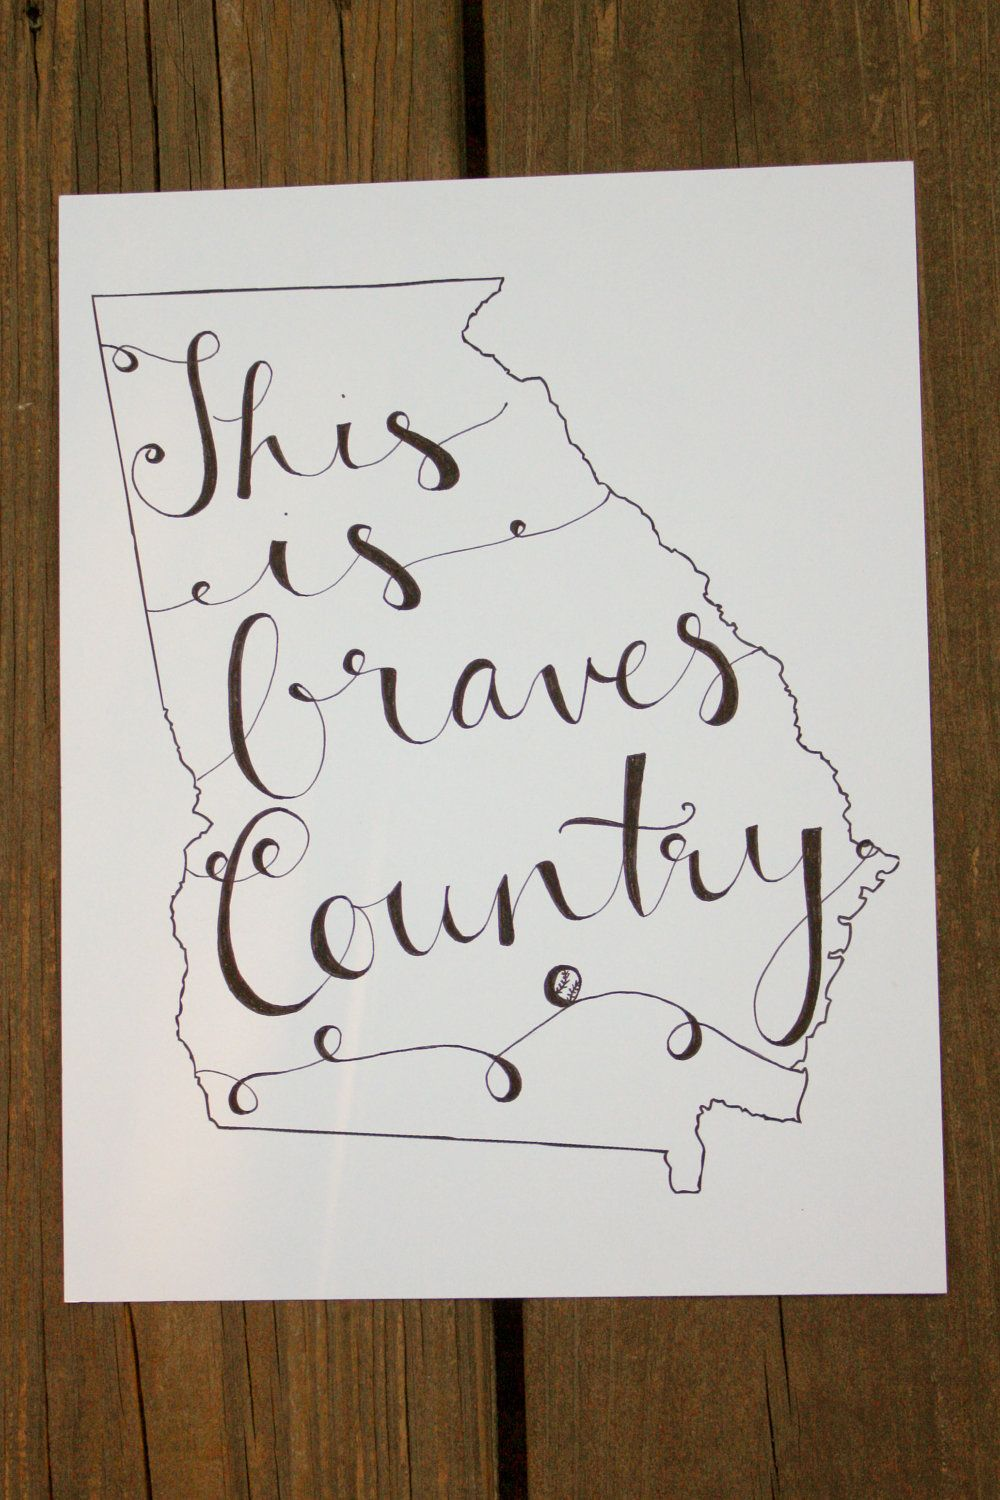 Georgia Braves Country Hand Lettered Calligraphy State Outline Print Wall Art Home Decor Uga Georgia Tech Atlanta Hometown Braves Print Braves Shirts